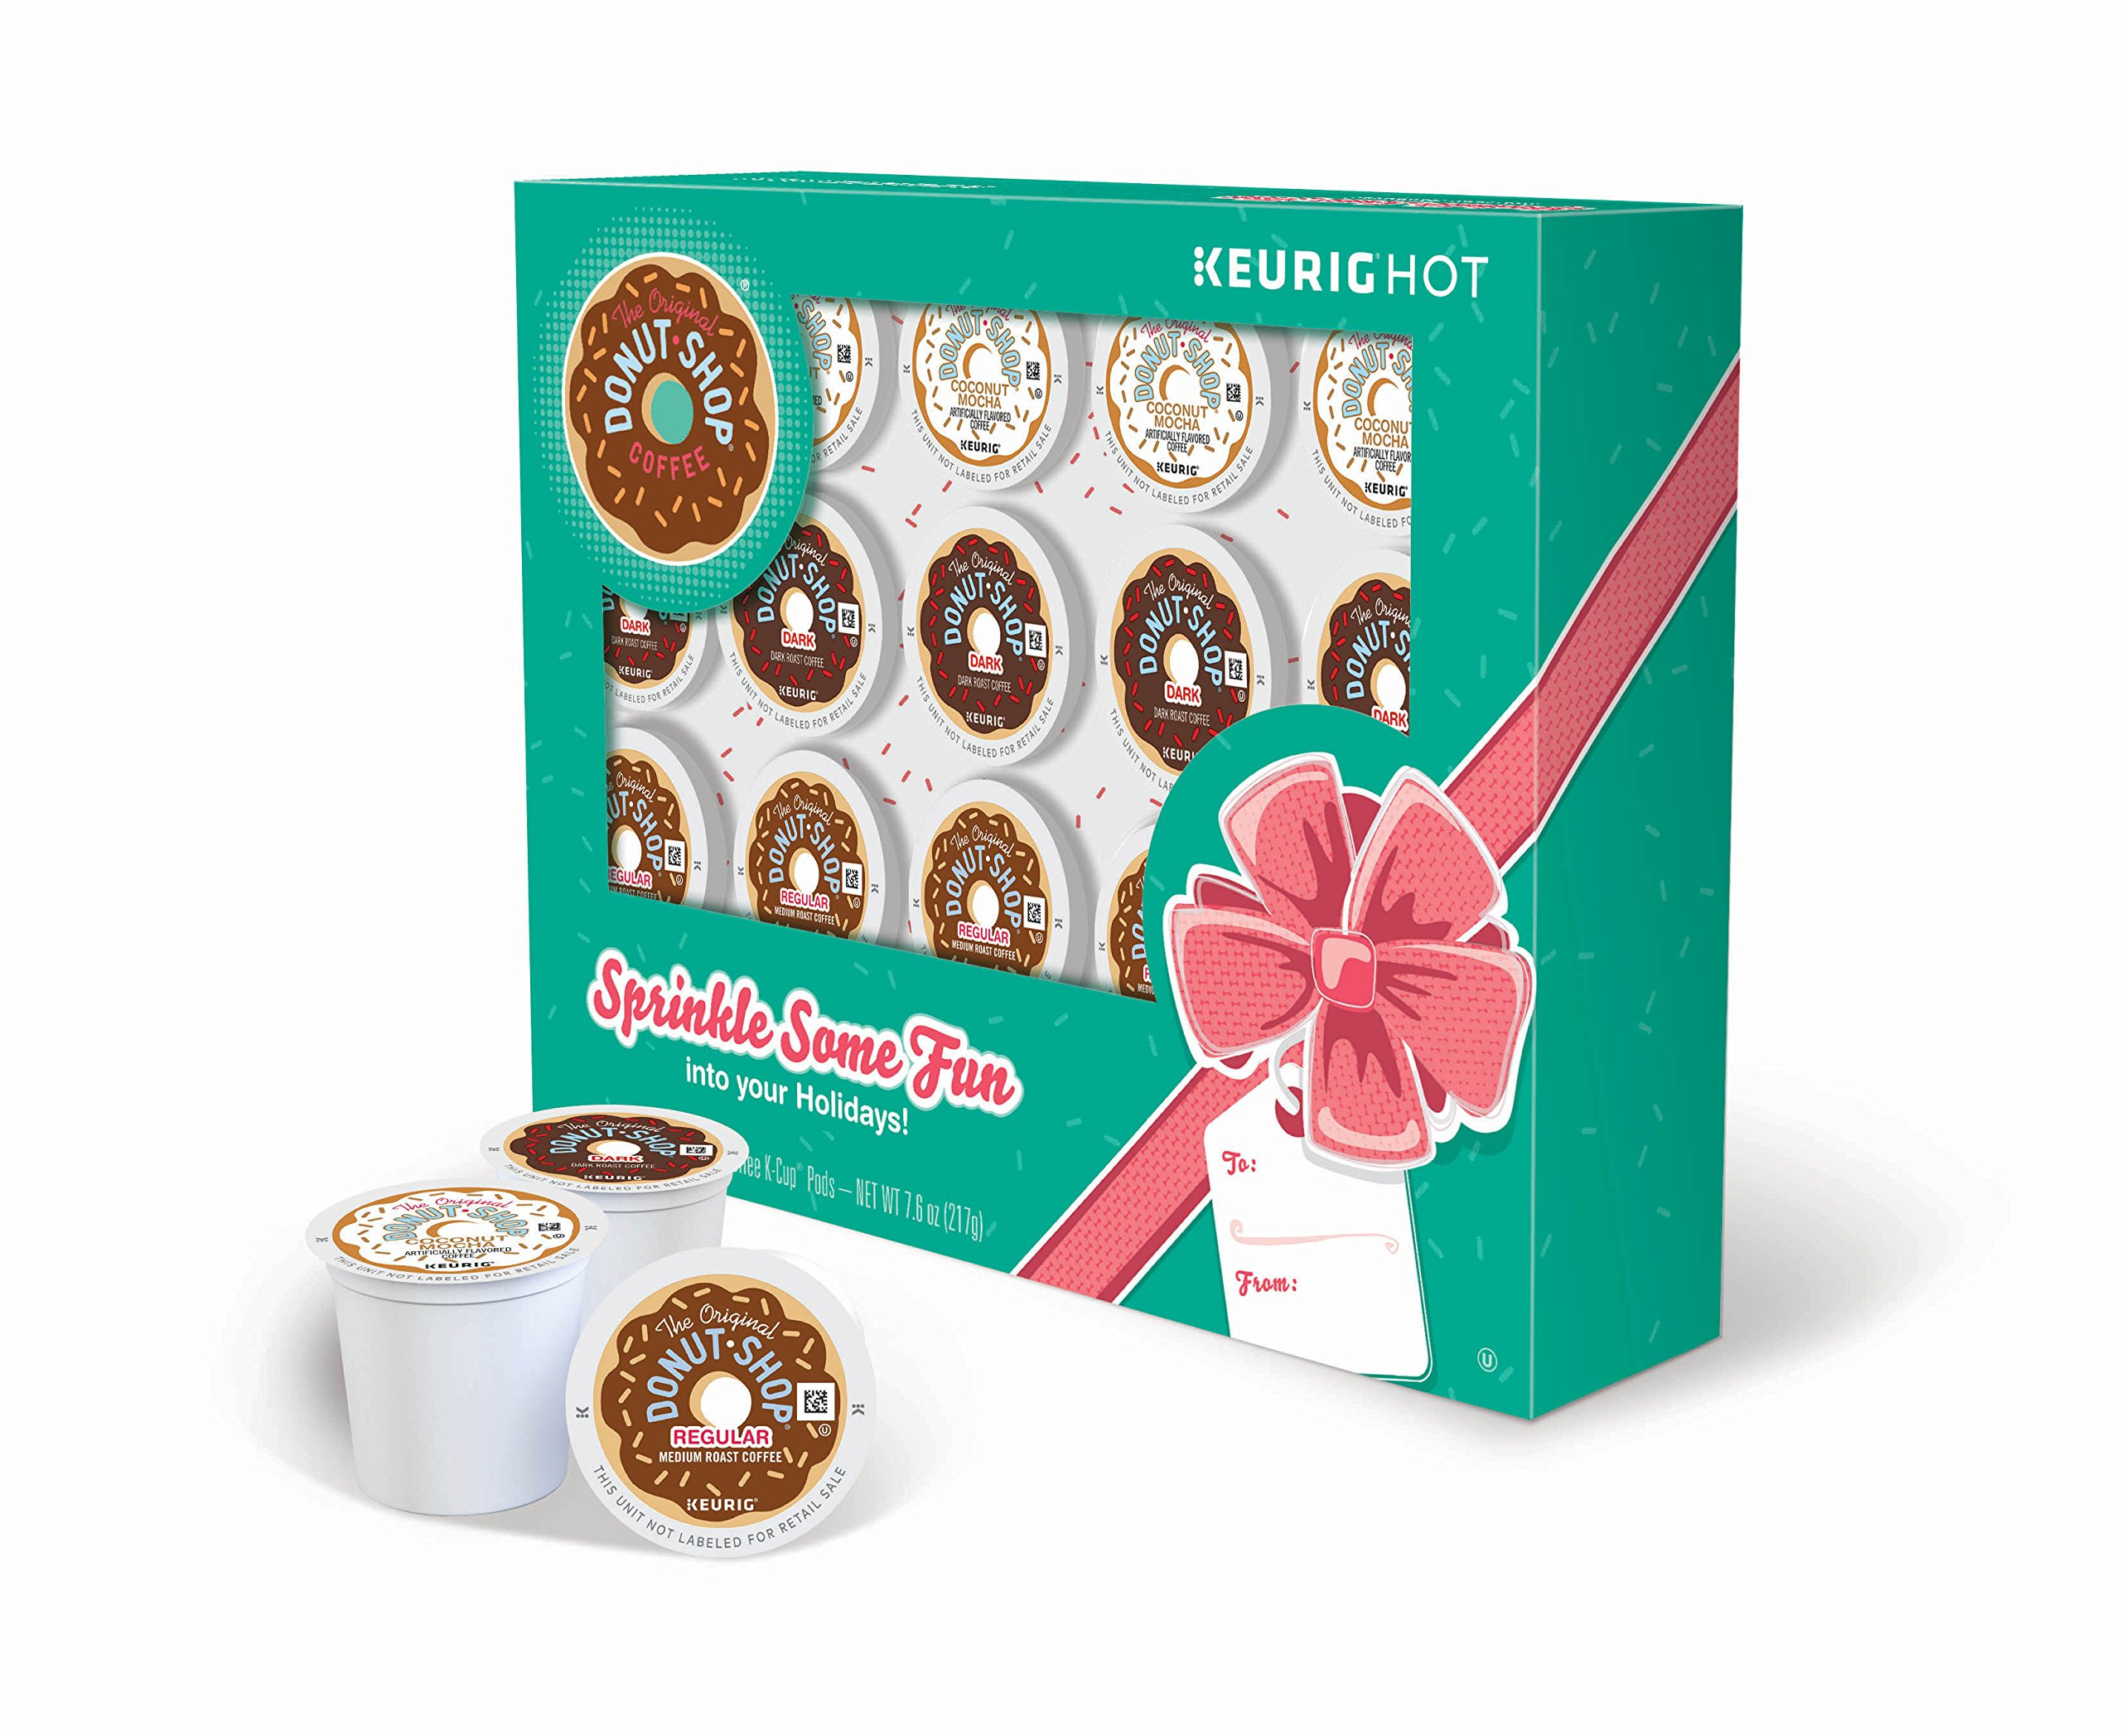 The Original Donut Shop Keurig Single-Serve K-Cup Pod Holiday Coffee Gift Box (Pack of 12)